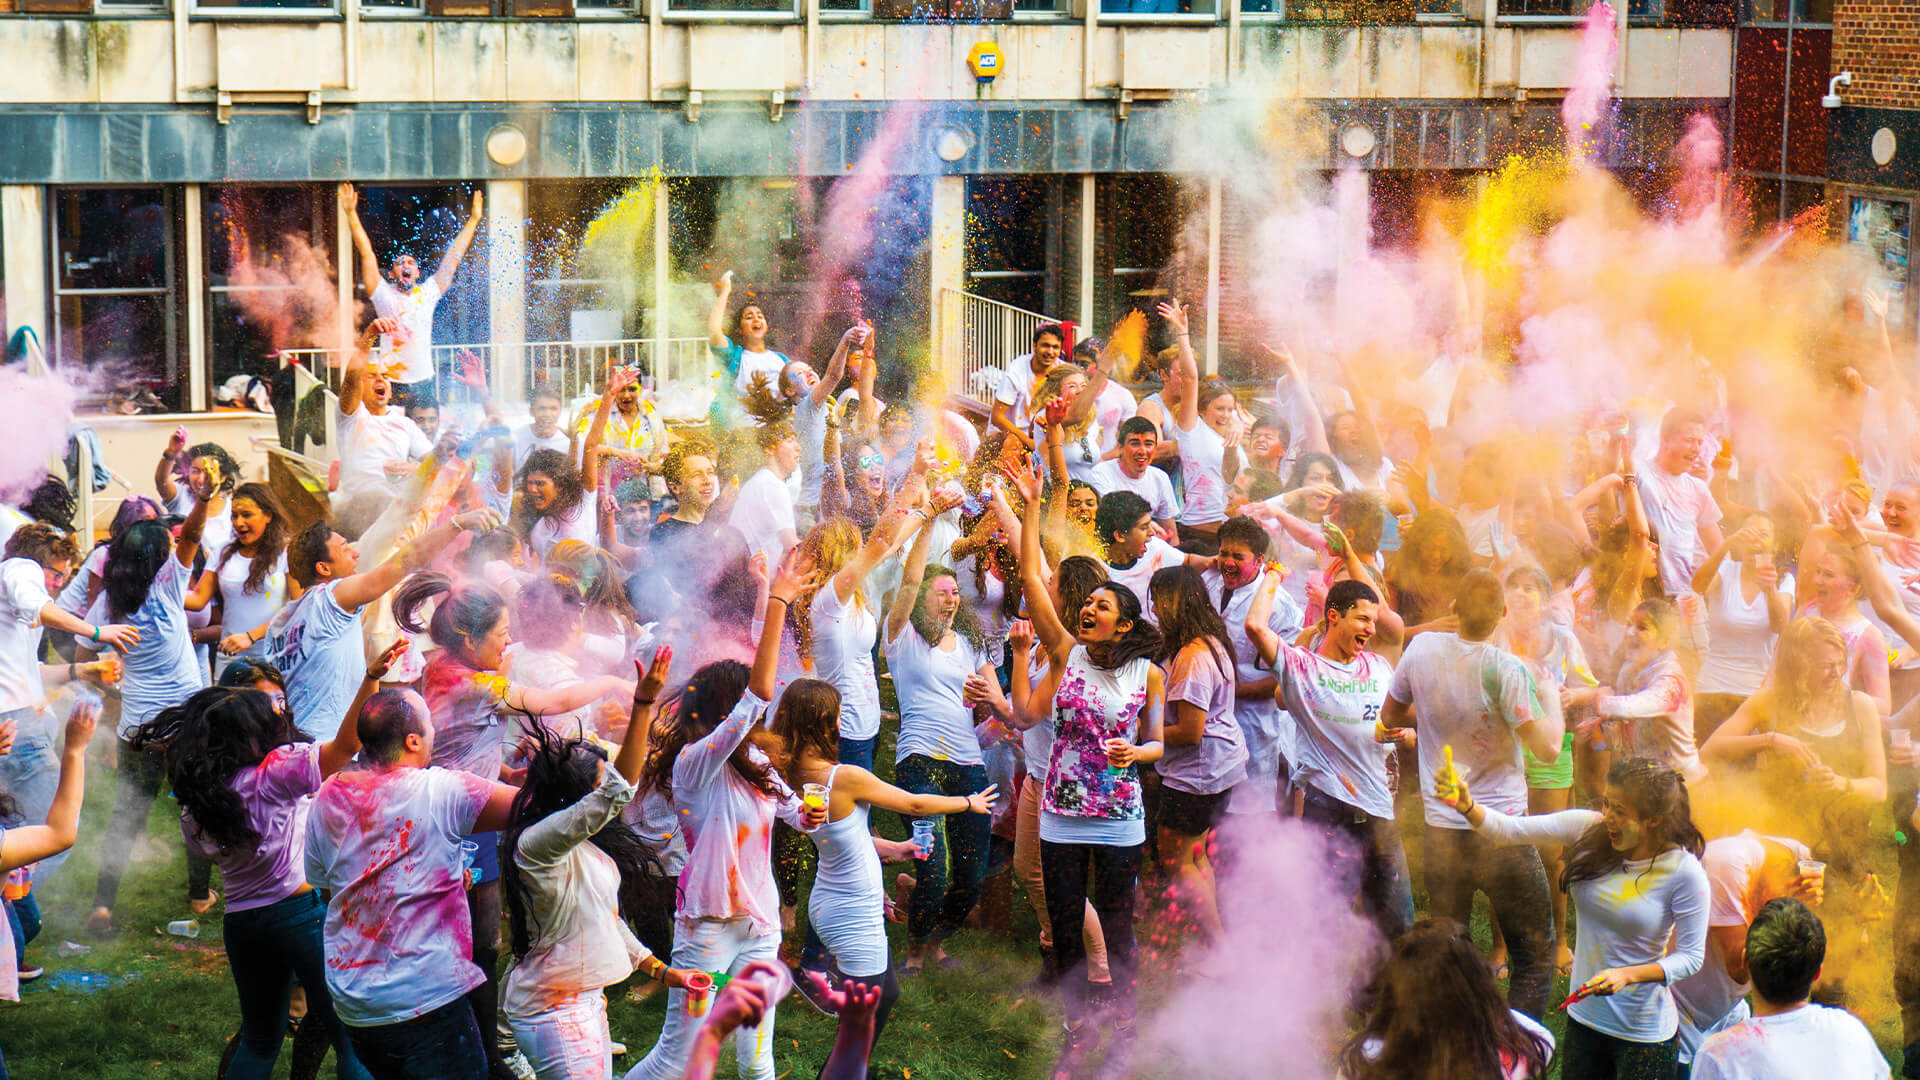 Students taking part in Holi celebrations at University of Exeter campus